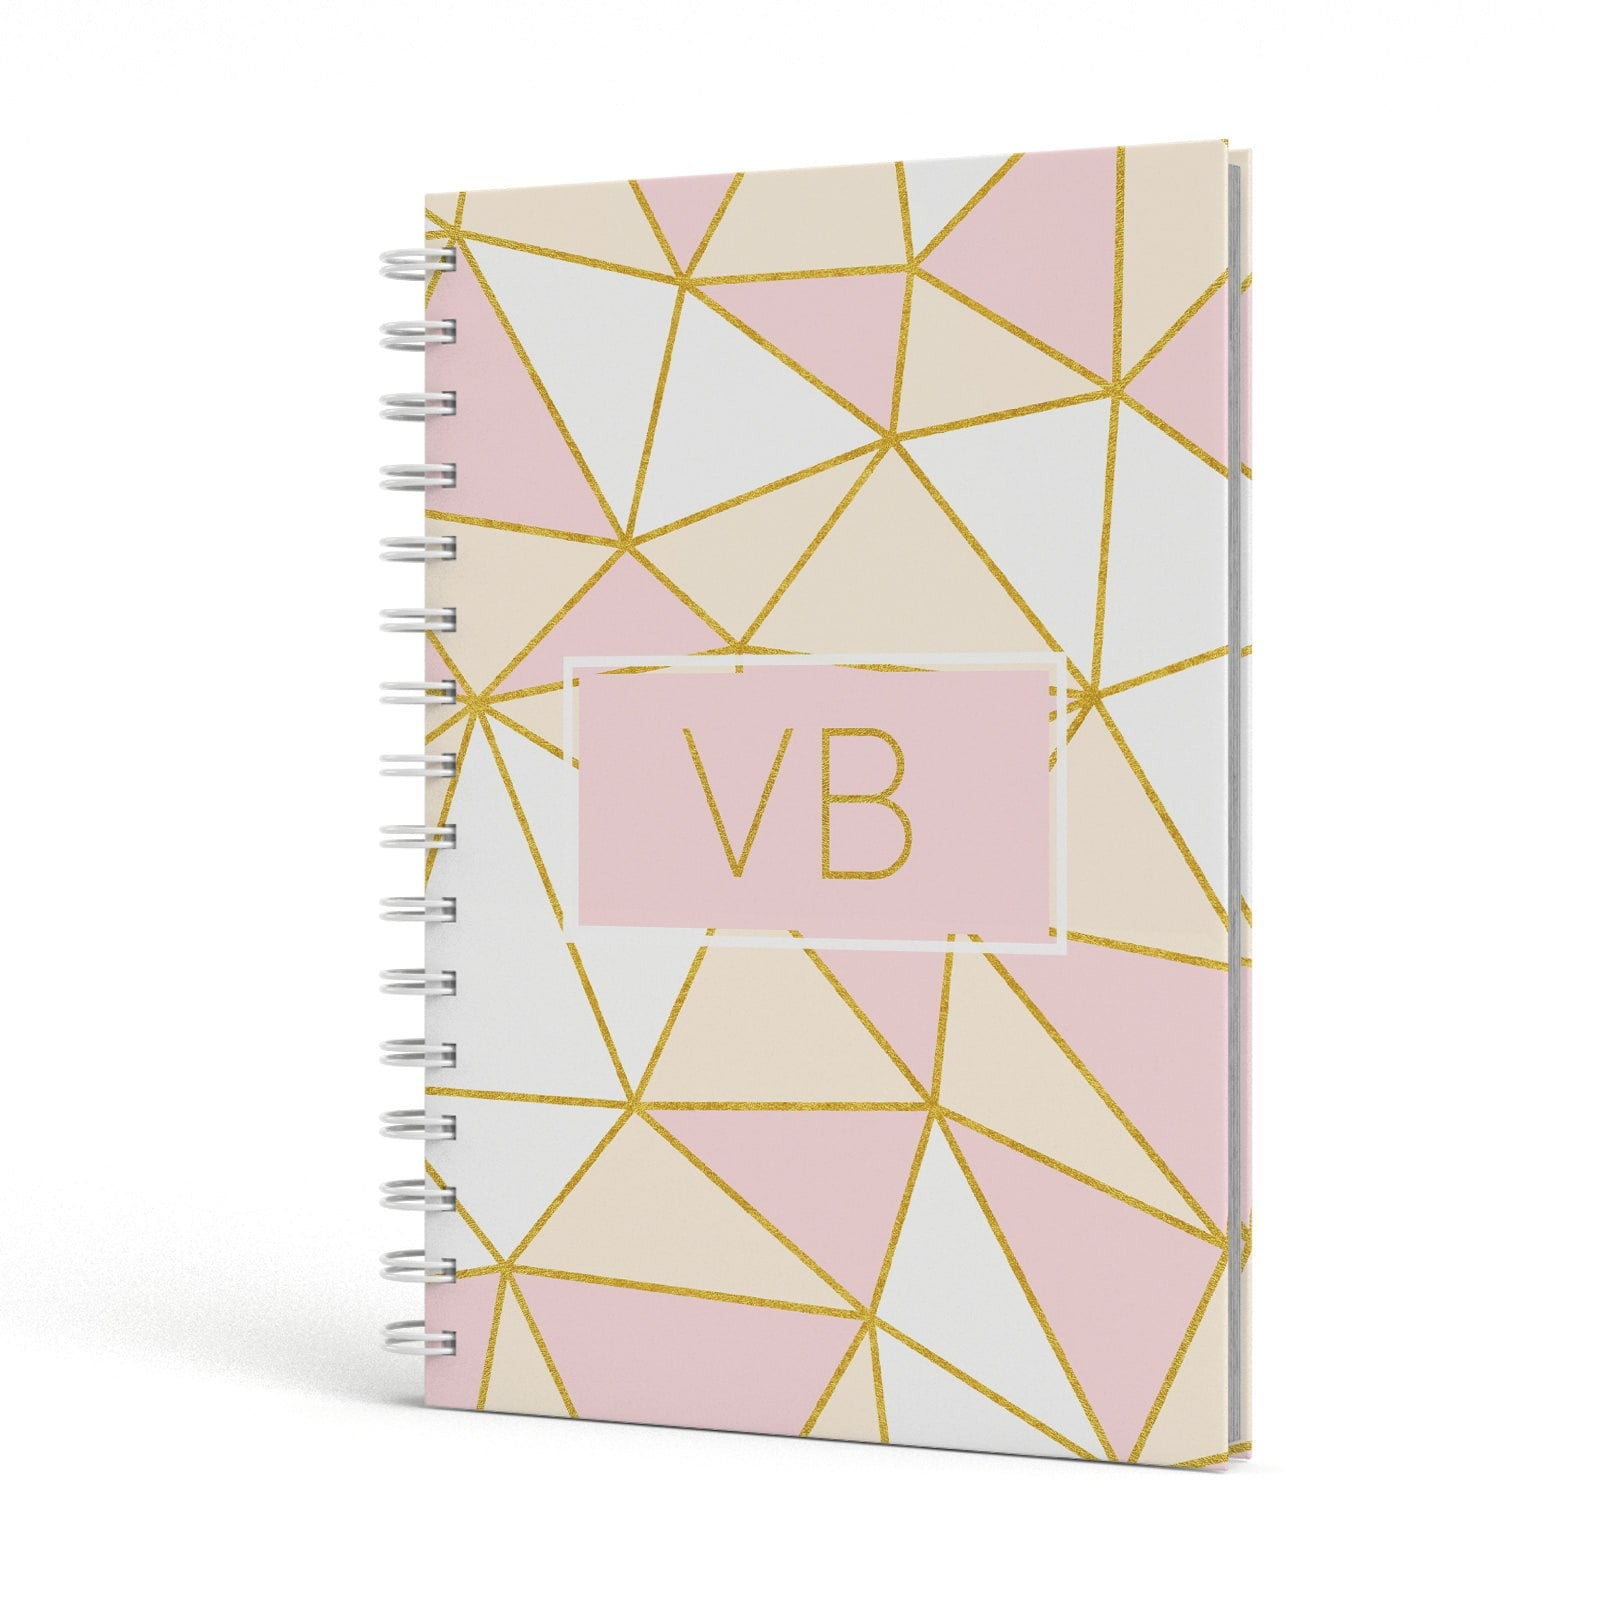 Personalised Gold Initials Geometric A5 Hardcover Notebook Side View